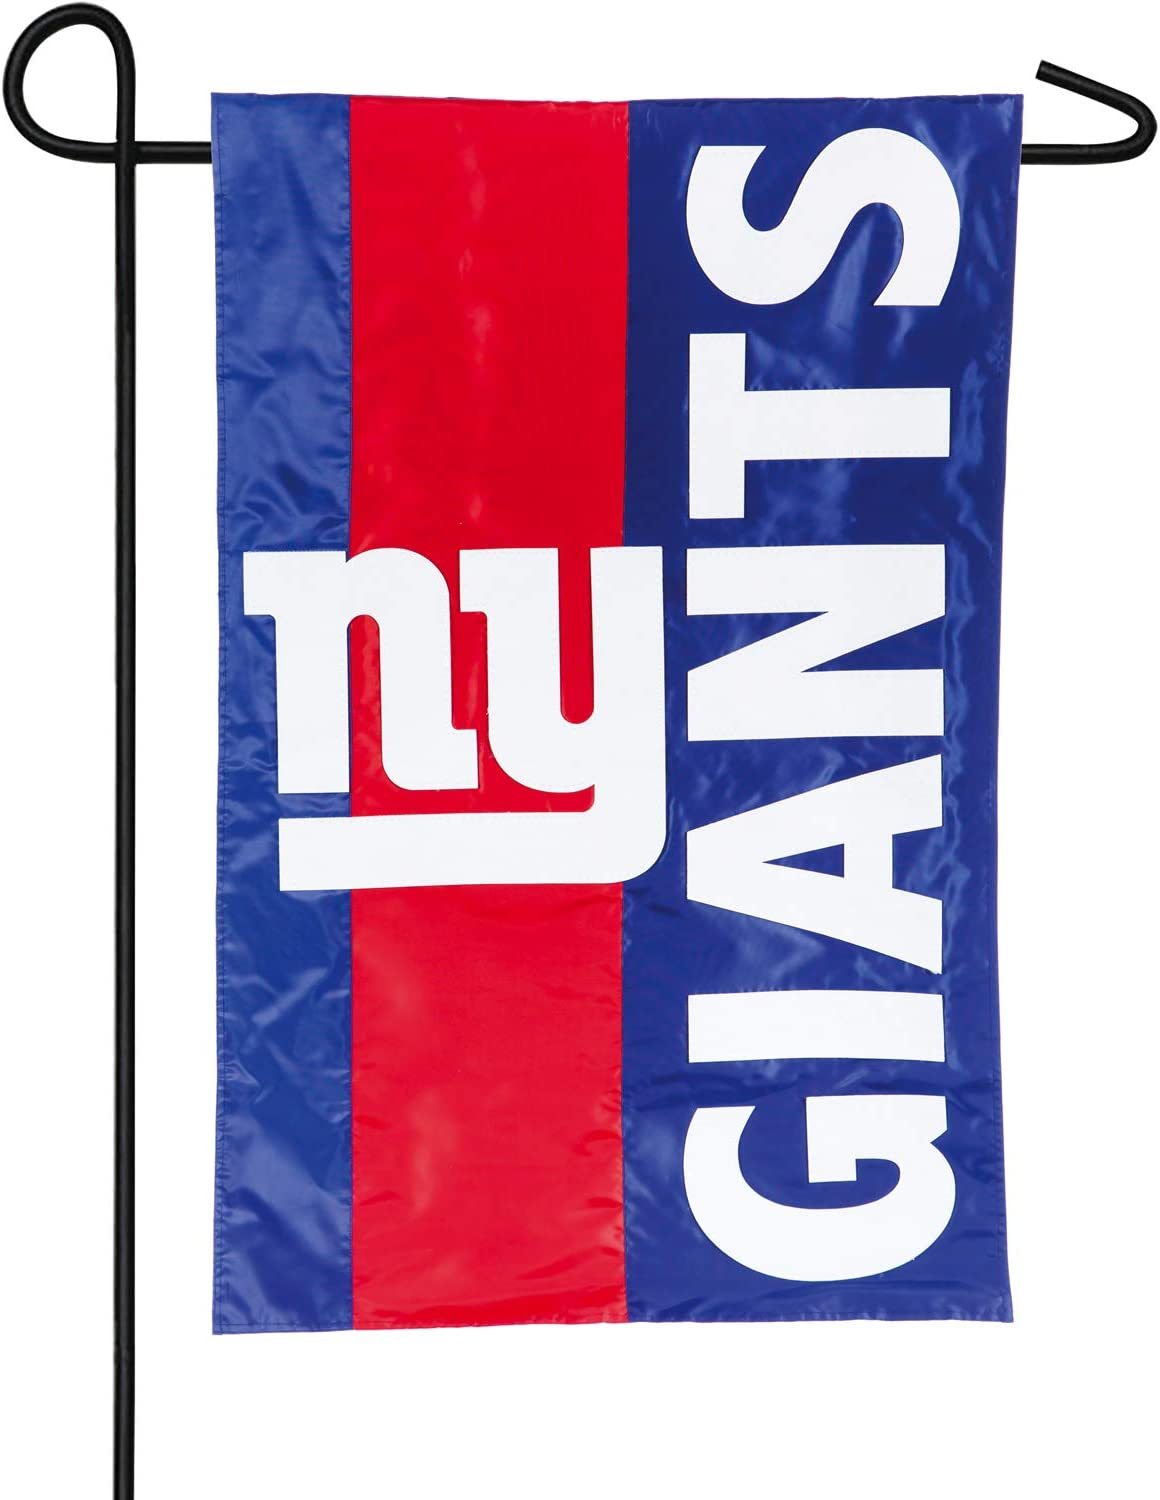 Team Sports America NFL New York Giants Embroidered Logo Applique Garden Flag, 12.5 x 18 inches Indoor Outdoor Double Sided Decor for Football Fans